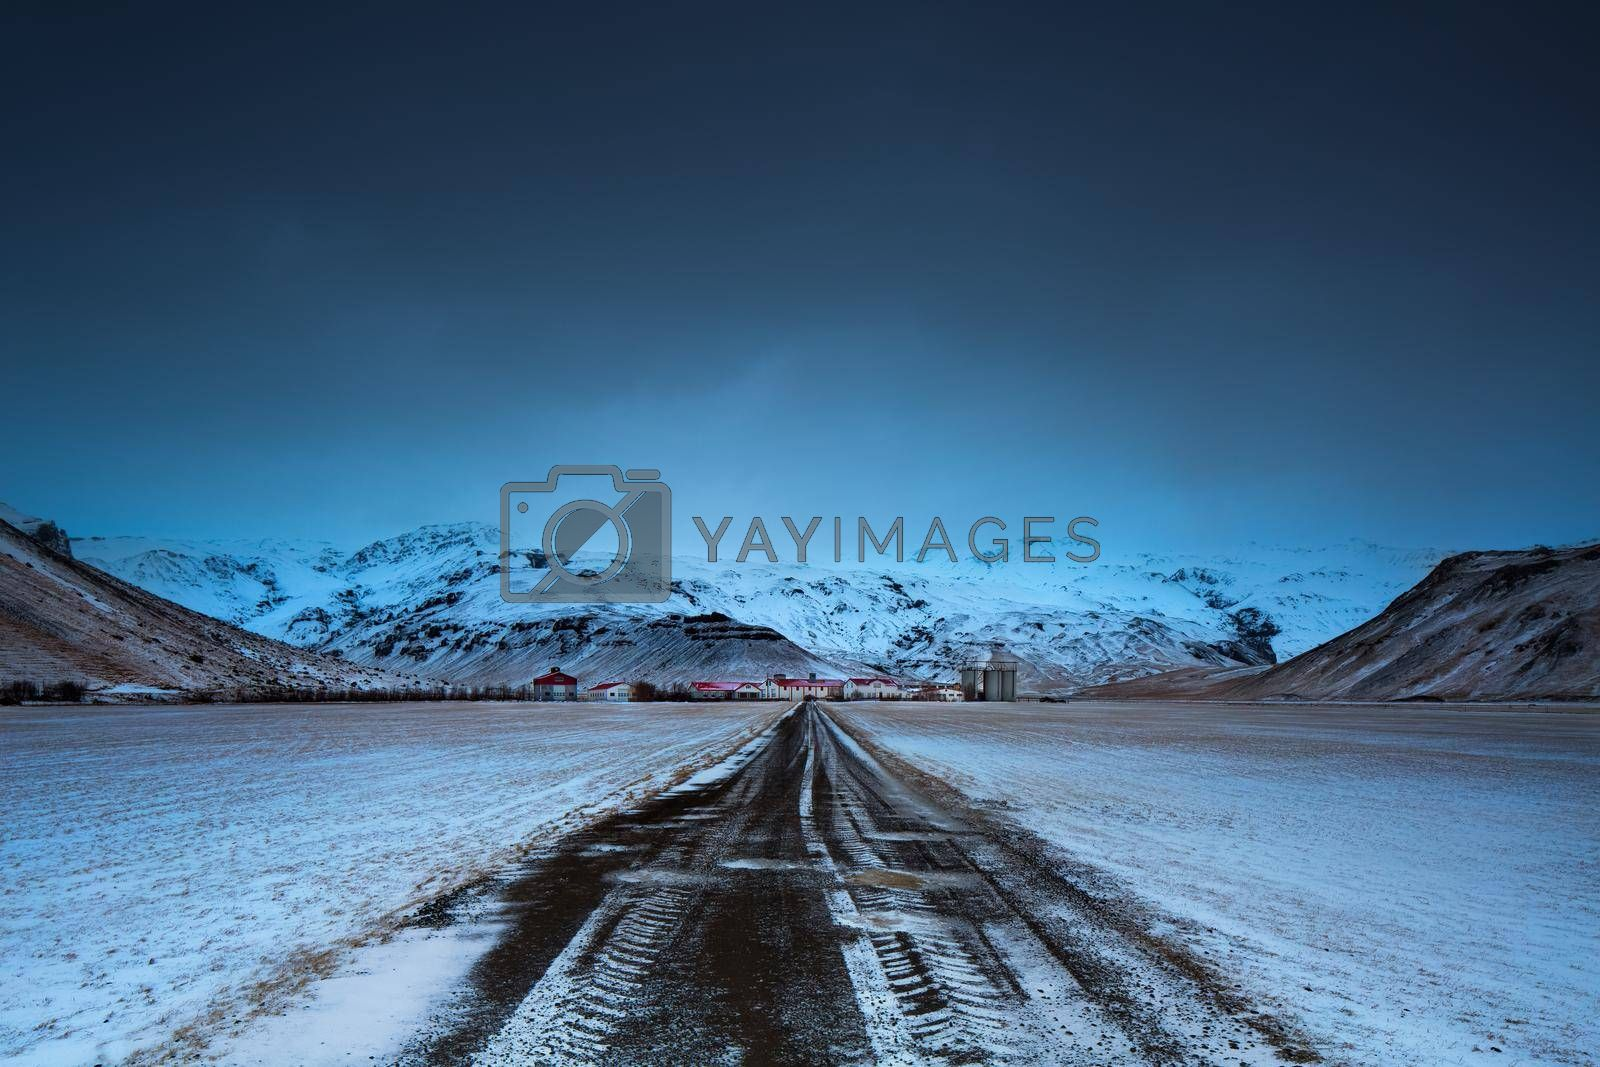 Beautiful Winter Landscape. Road Leads to a Small Village Located at the Foot of High Mountains Covered with Snow. Travel to Iceland.